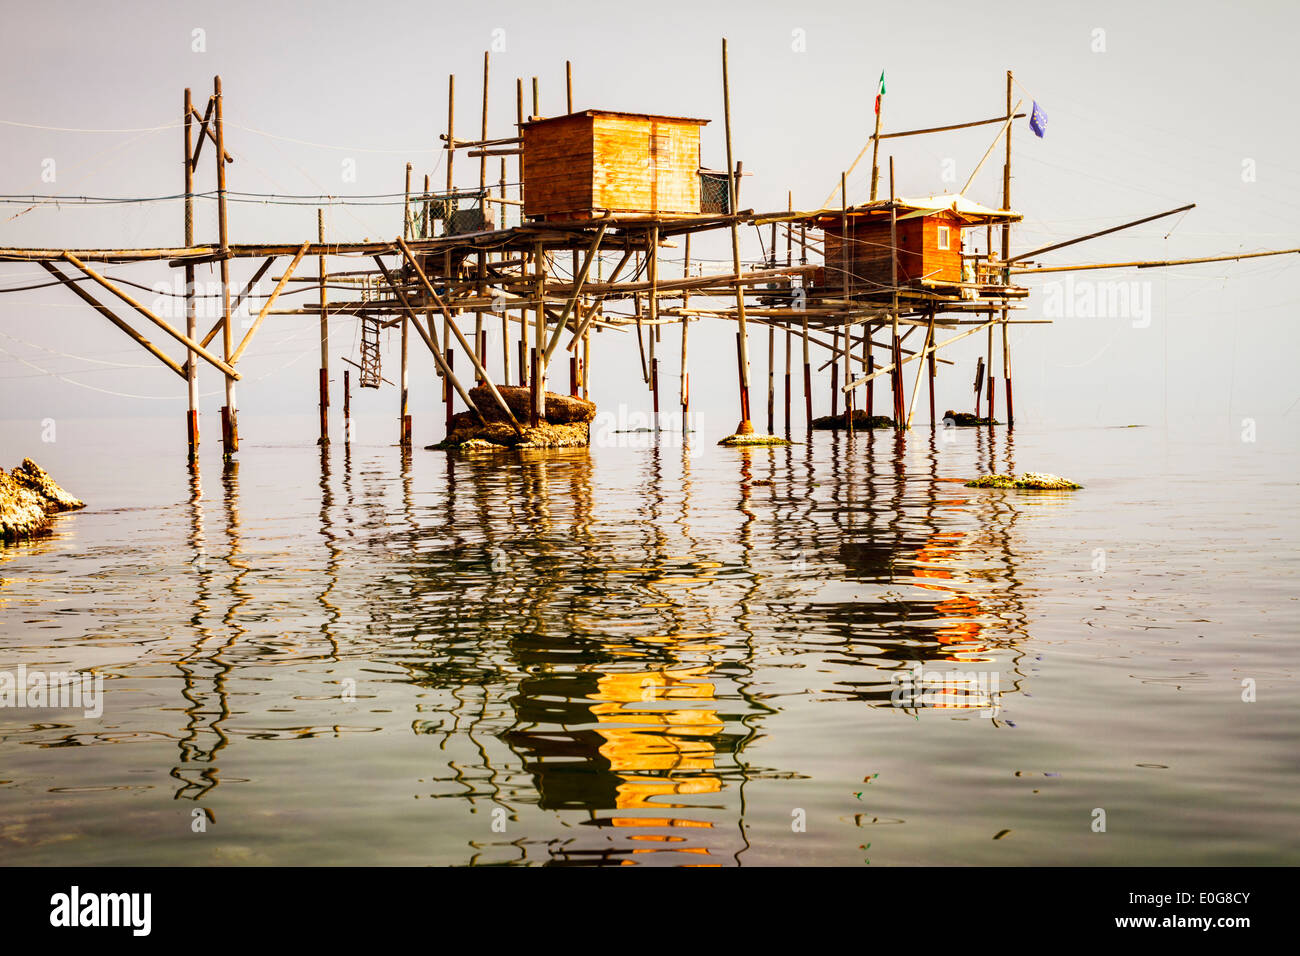 A trabocco, an old fishing machine, in the early morning haze on the Adriatic coast in Abruzzo, Italy. - Stock Image